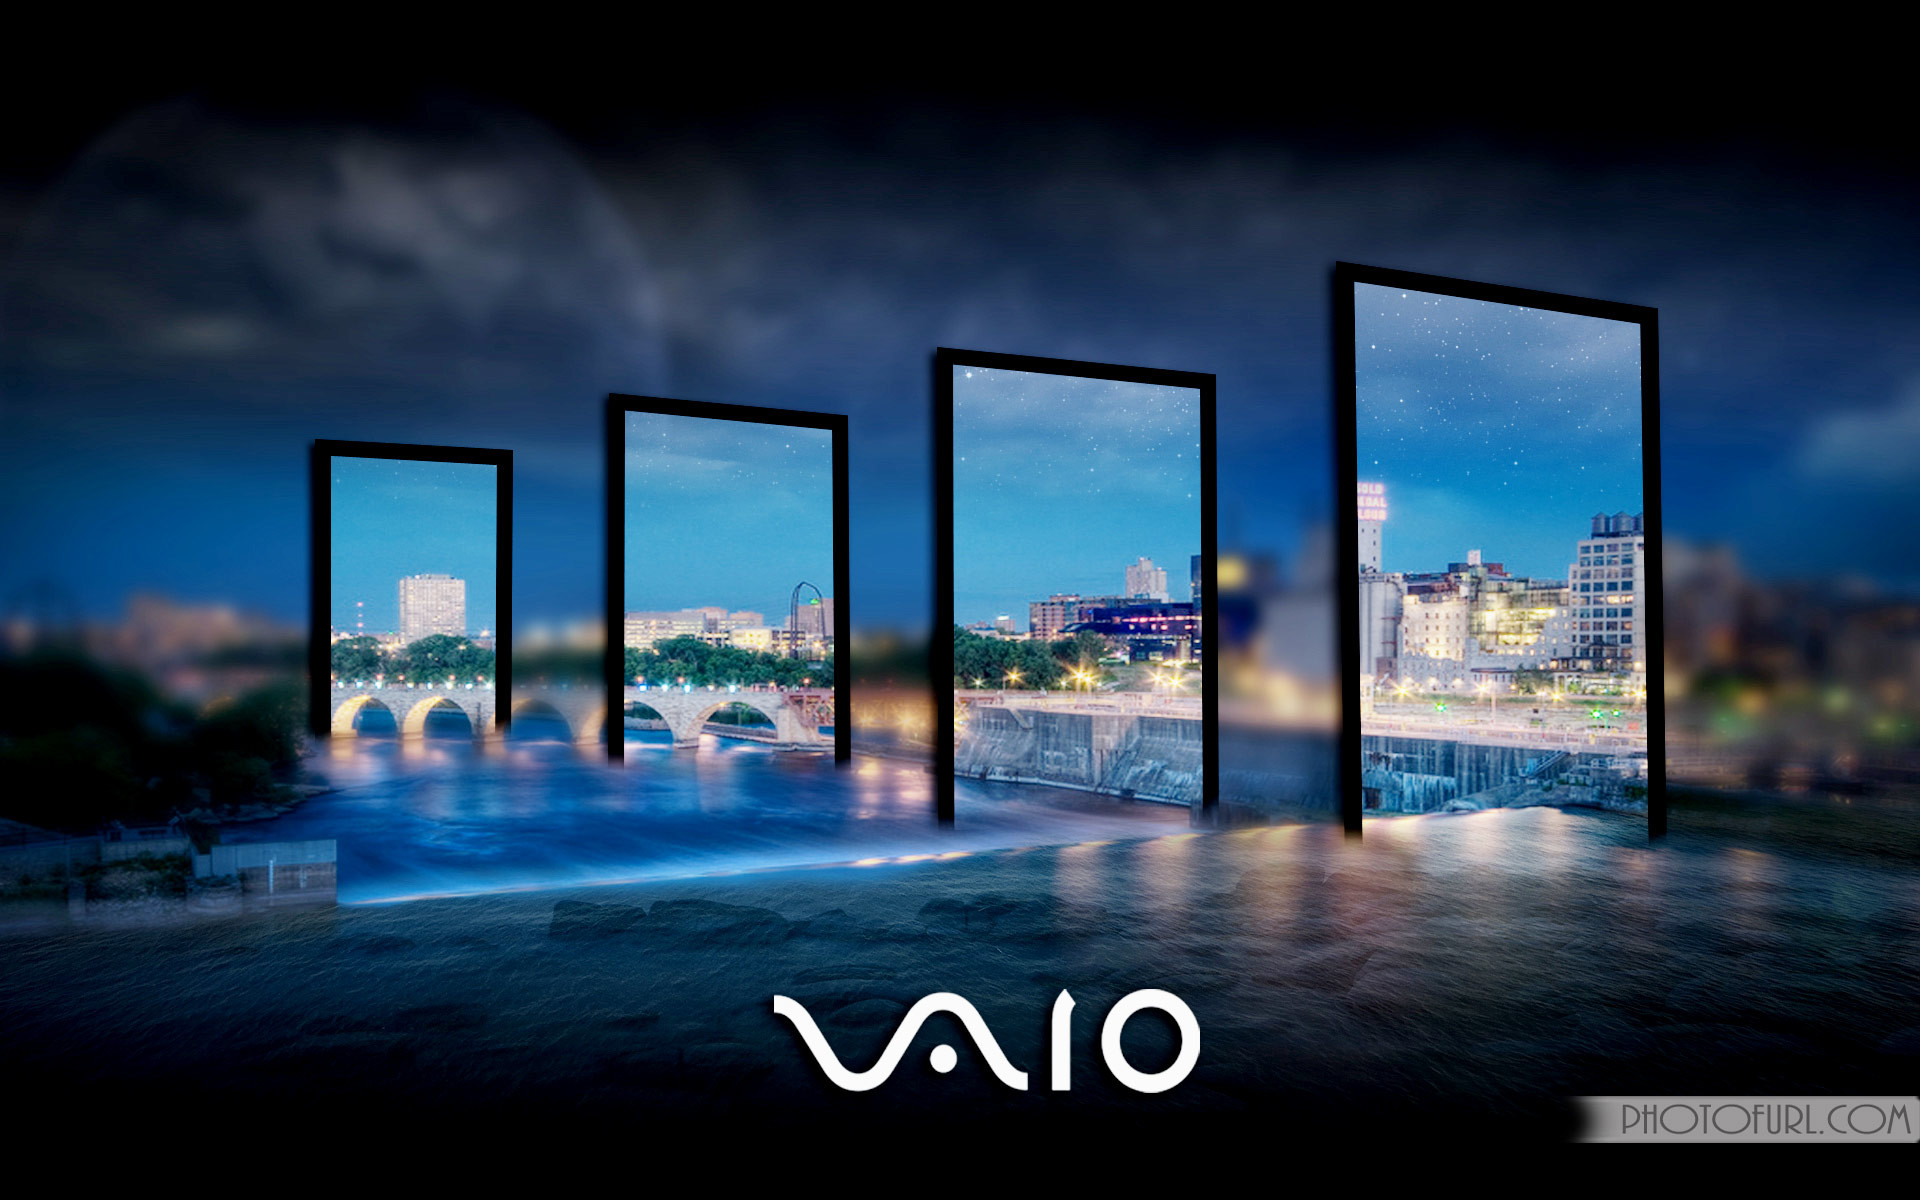 Sony Hd Wallpaper 74 Images: Laptops Vaio Wallpaper 2018 (48+ Pictures